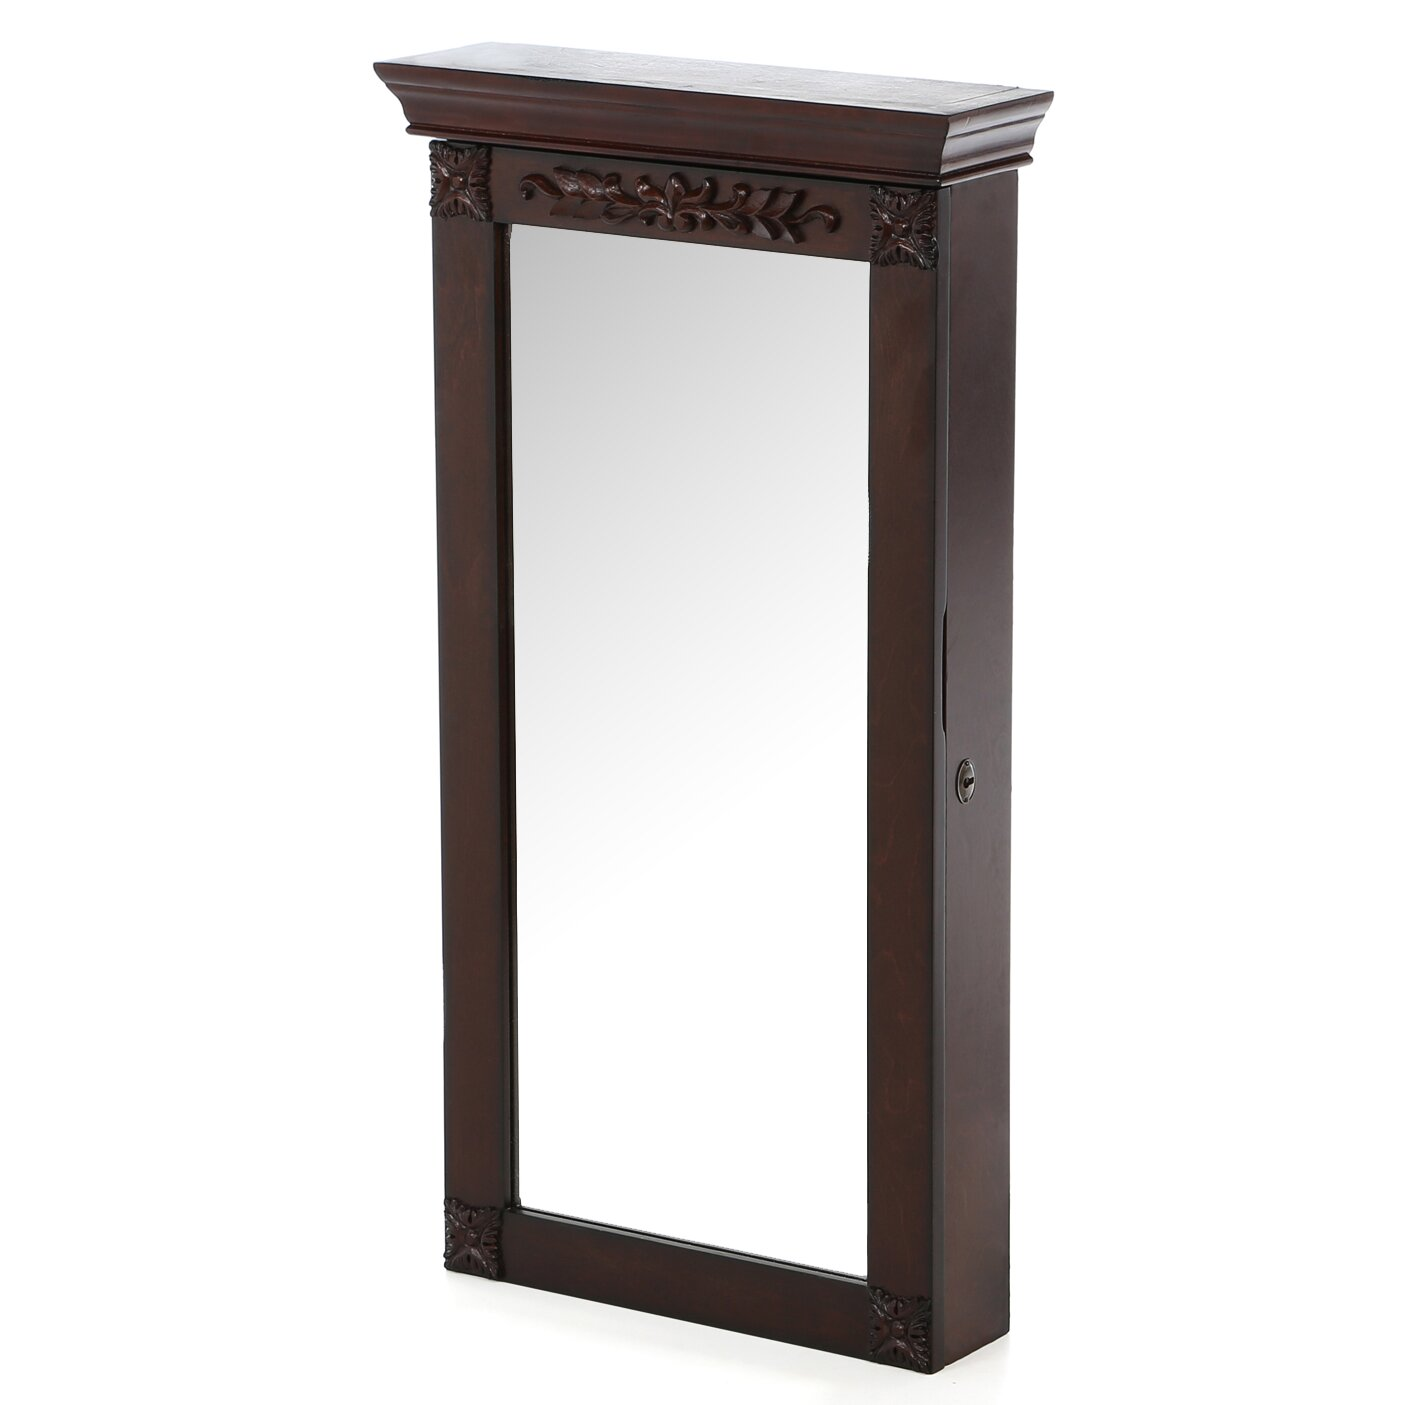 Rosalind wheeler cheetham wall mount jewelry armoire with for Wall mounted mirror